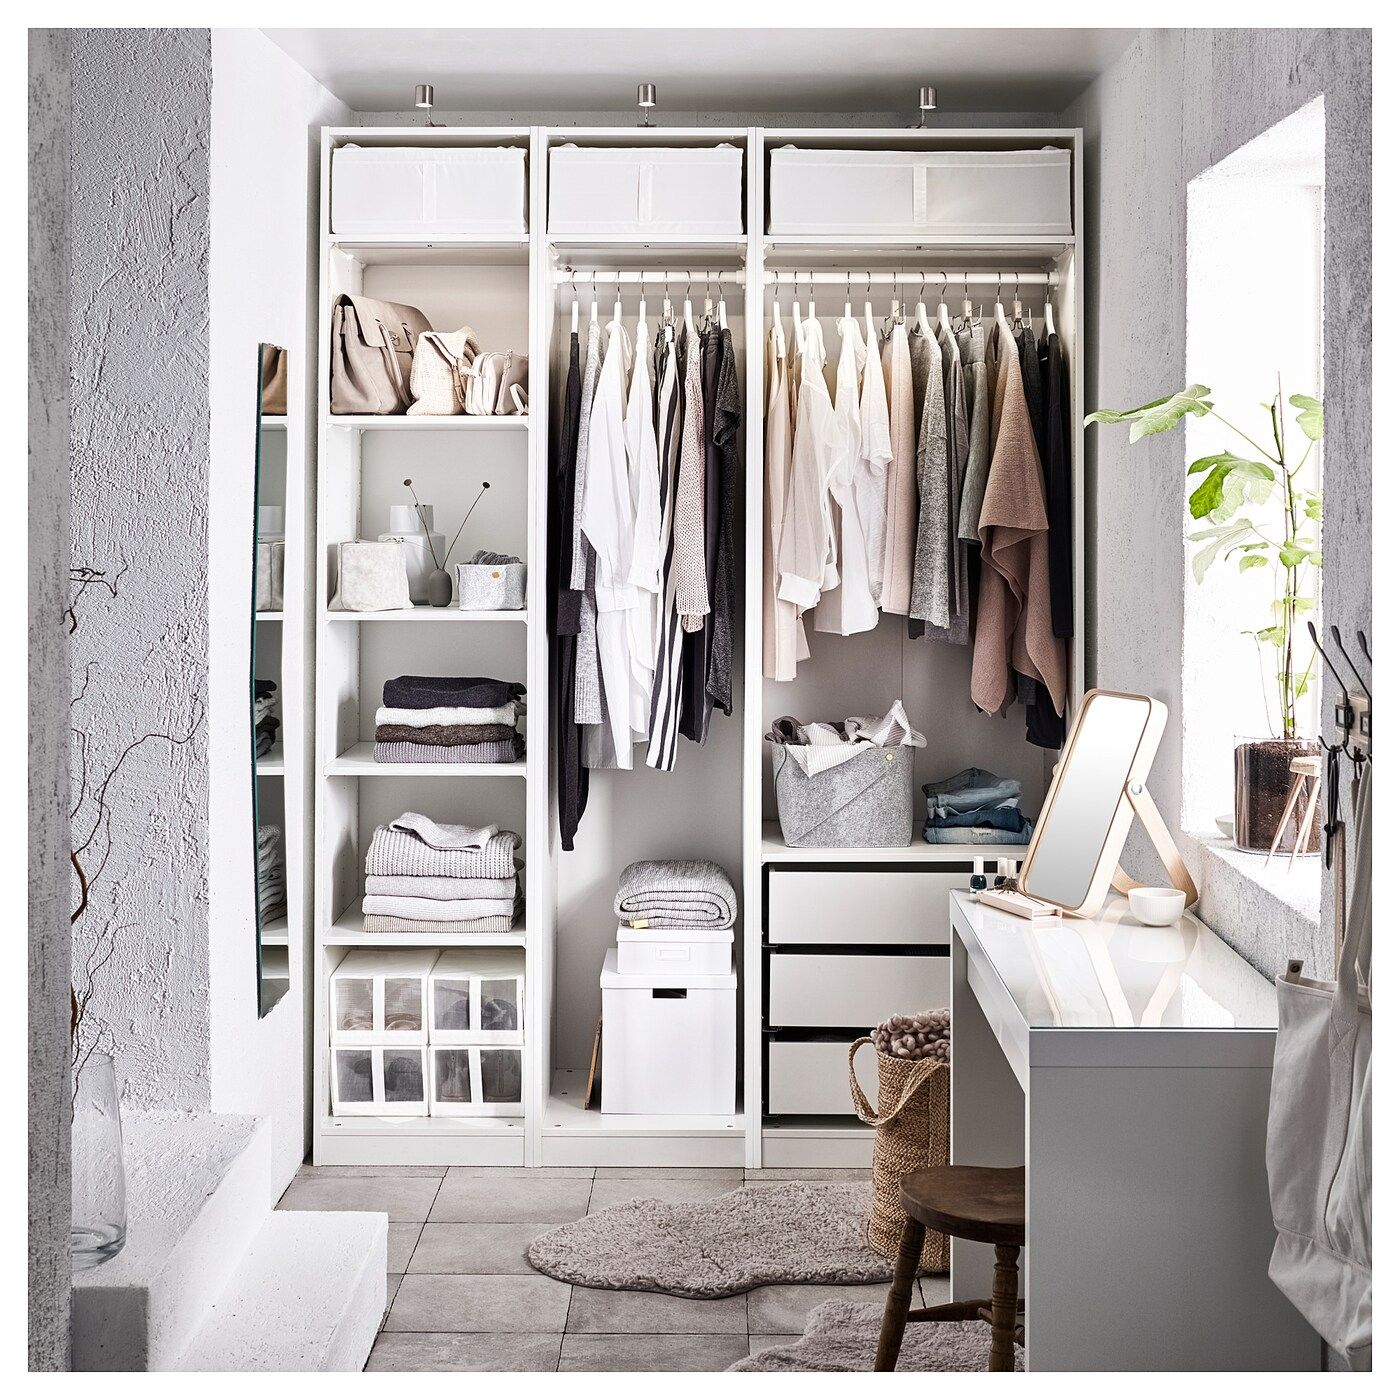 Pin Auf Room Inspiration